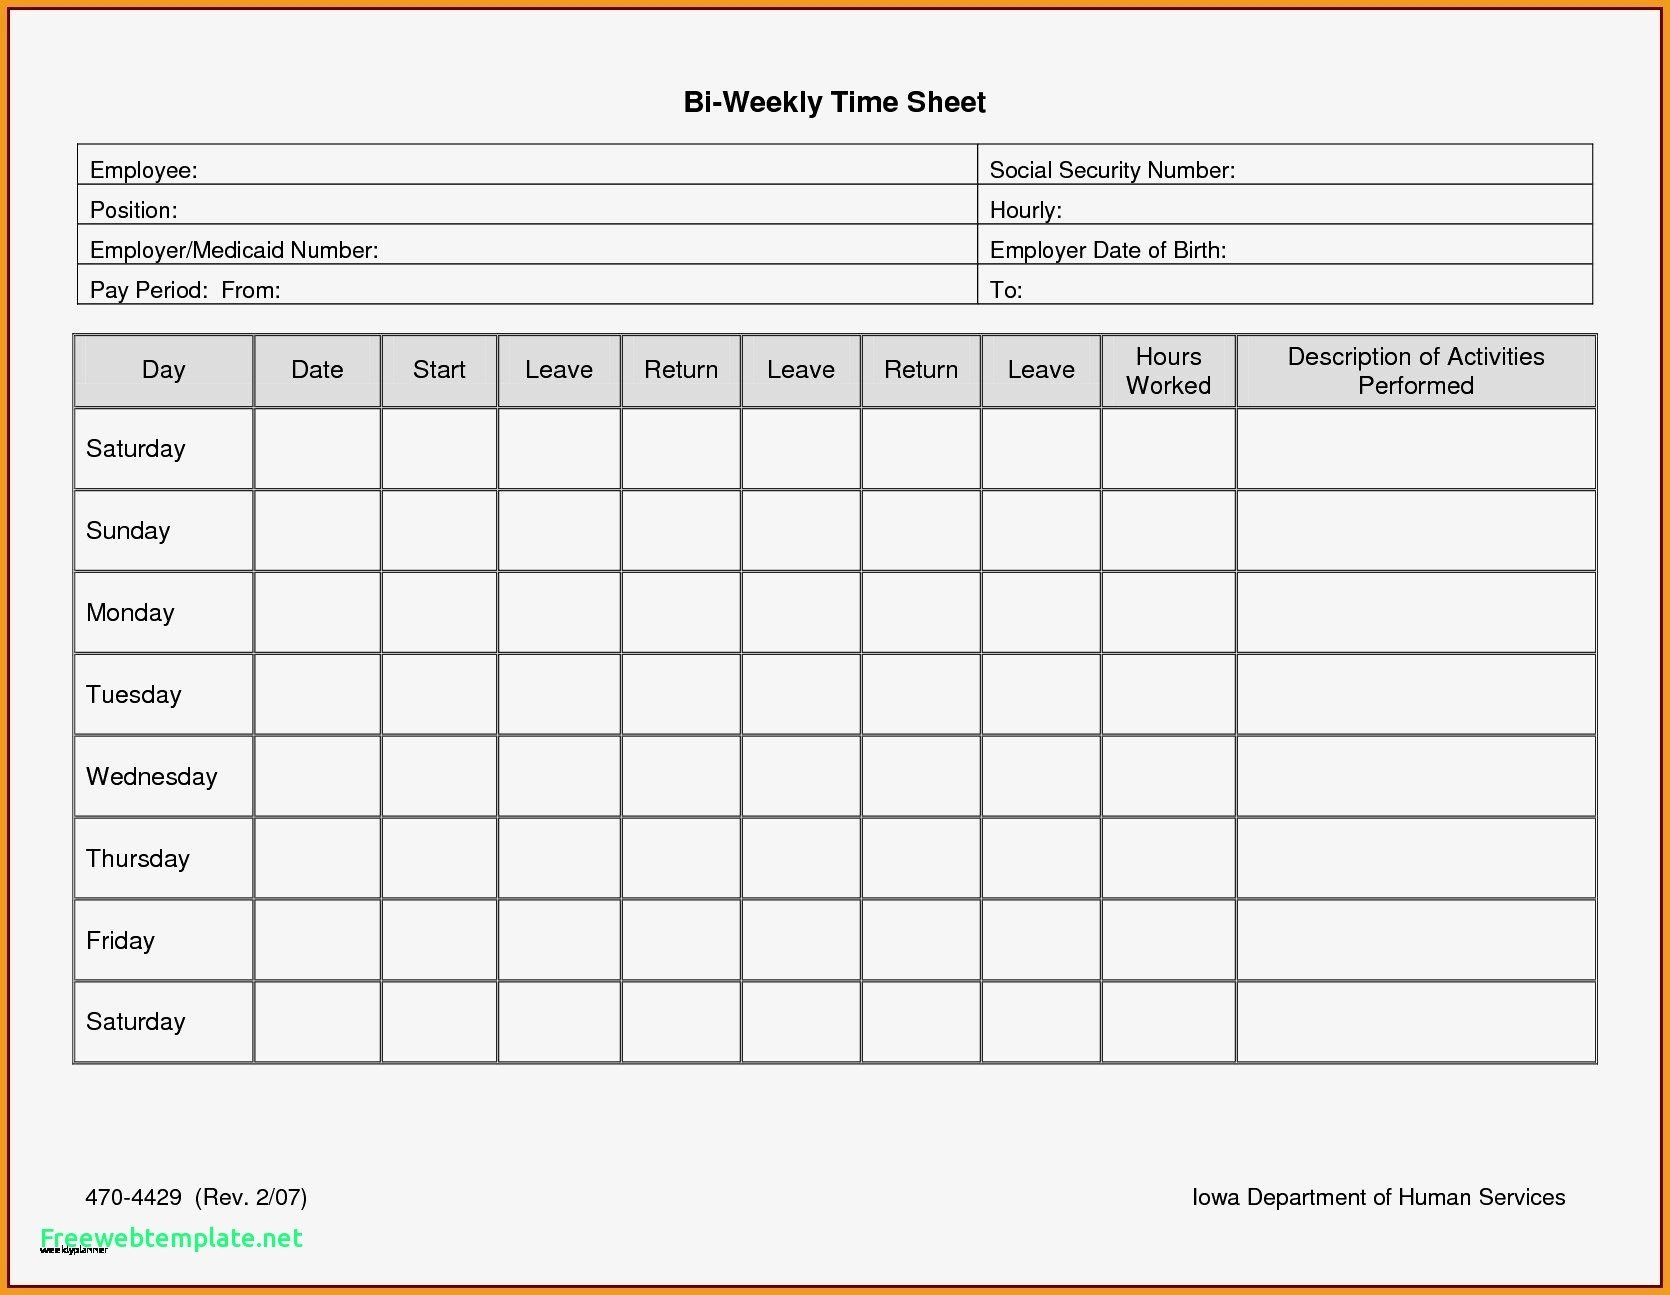 time motion study excel template fresh new time study template excel of time motion study excel template time study template